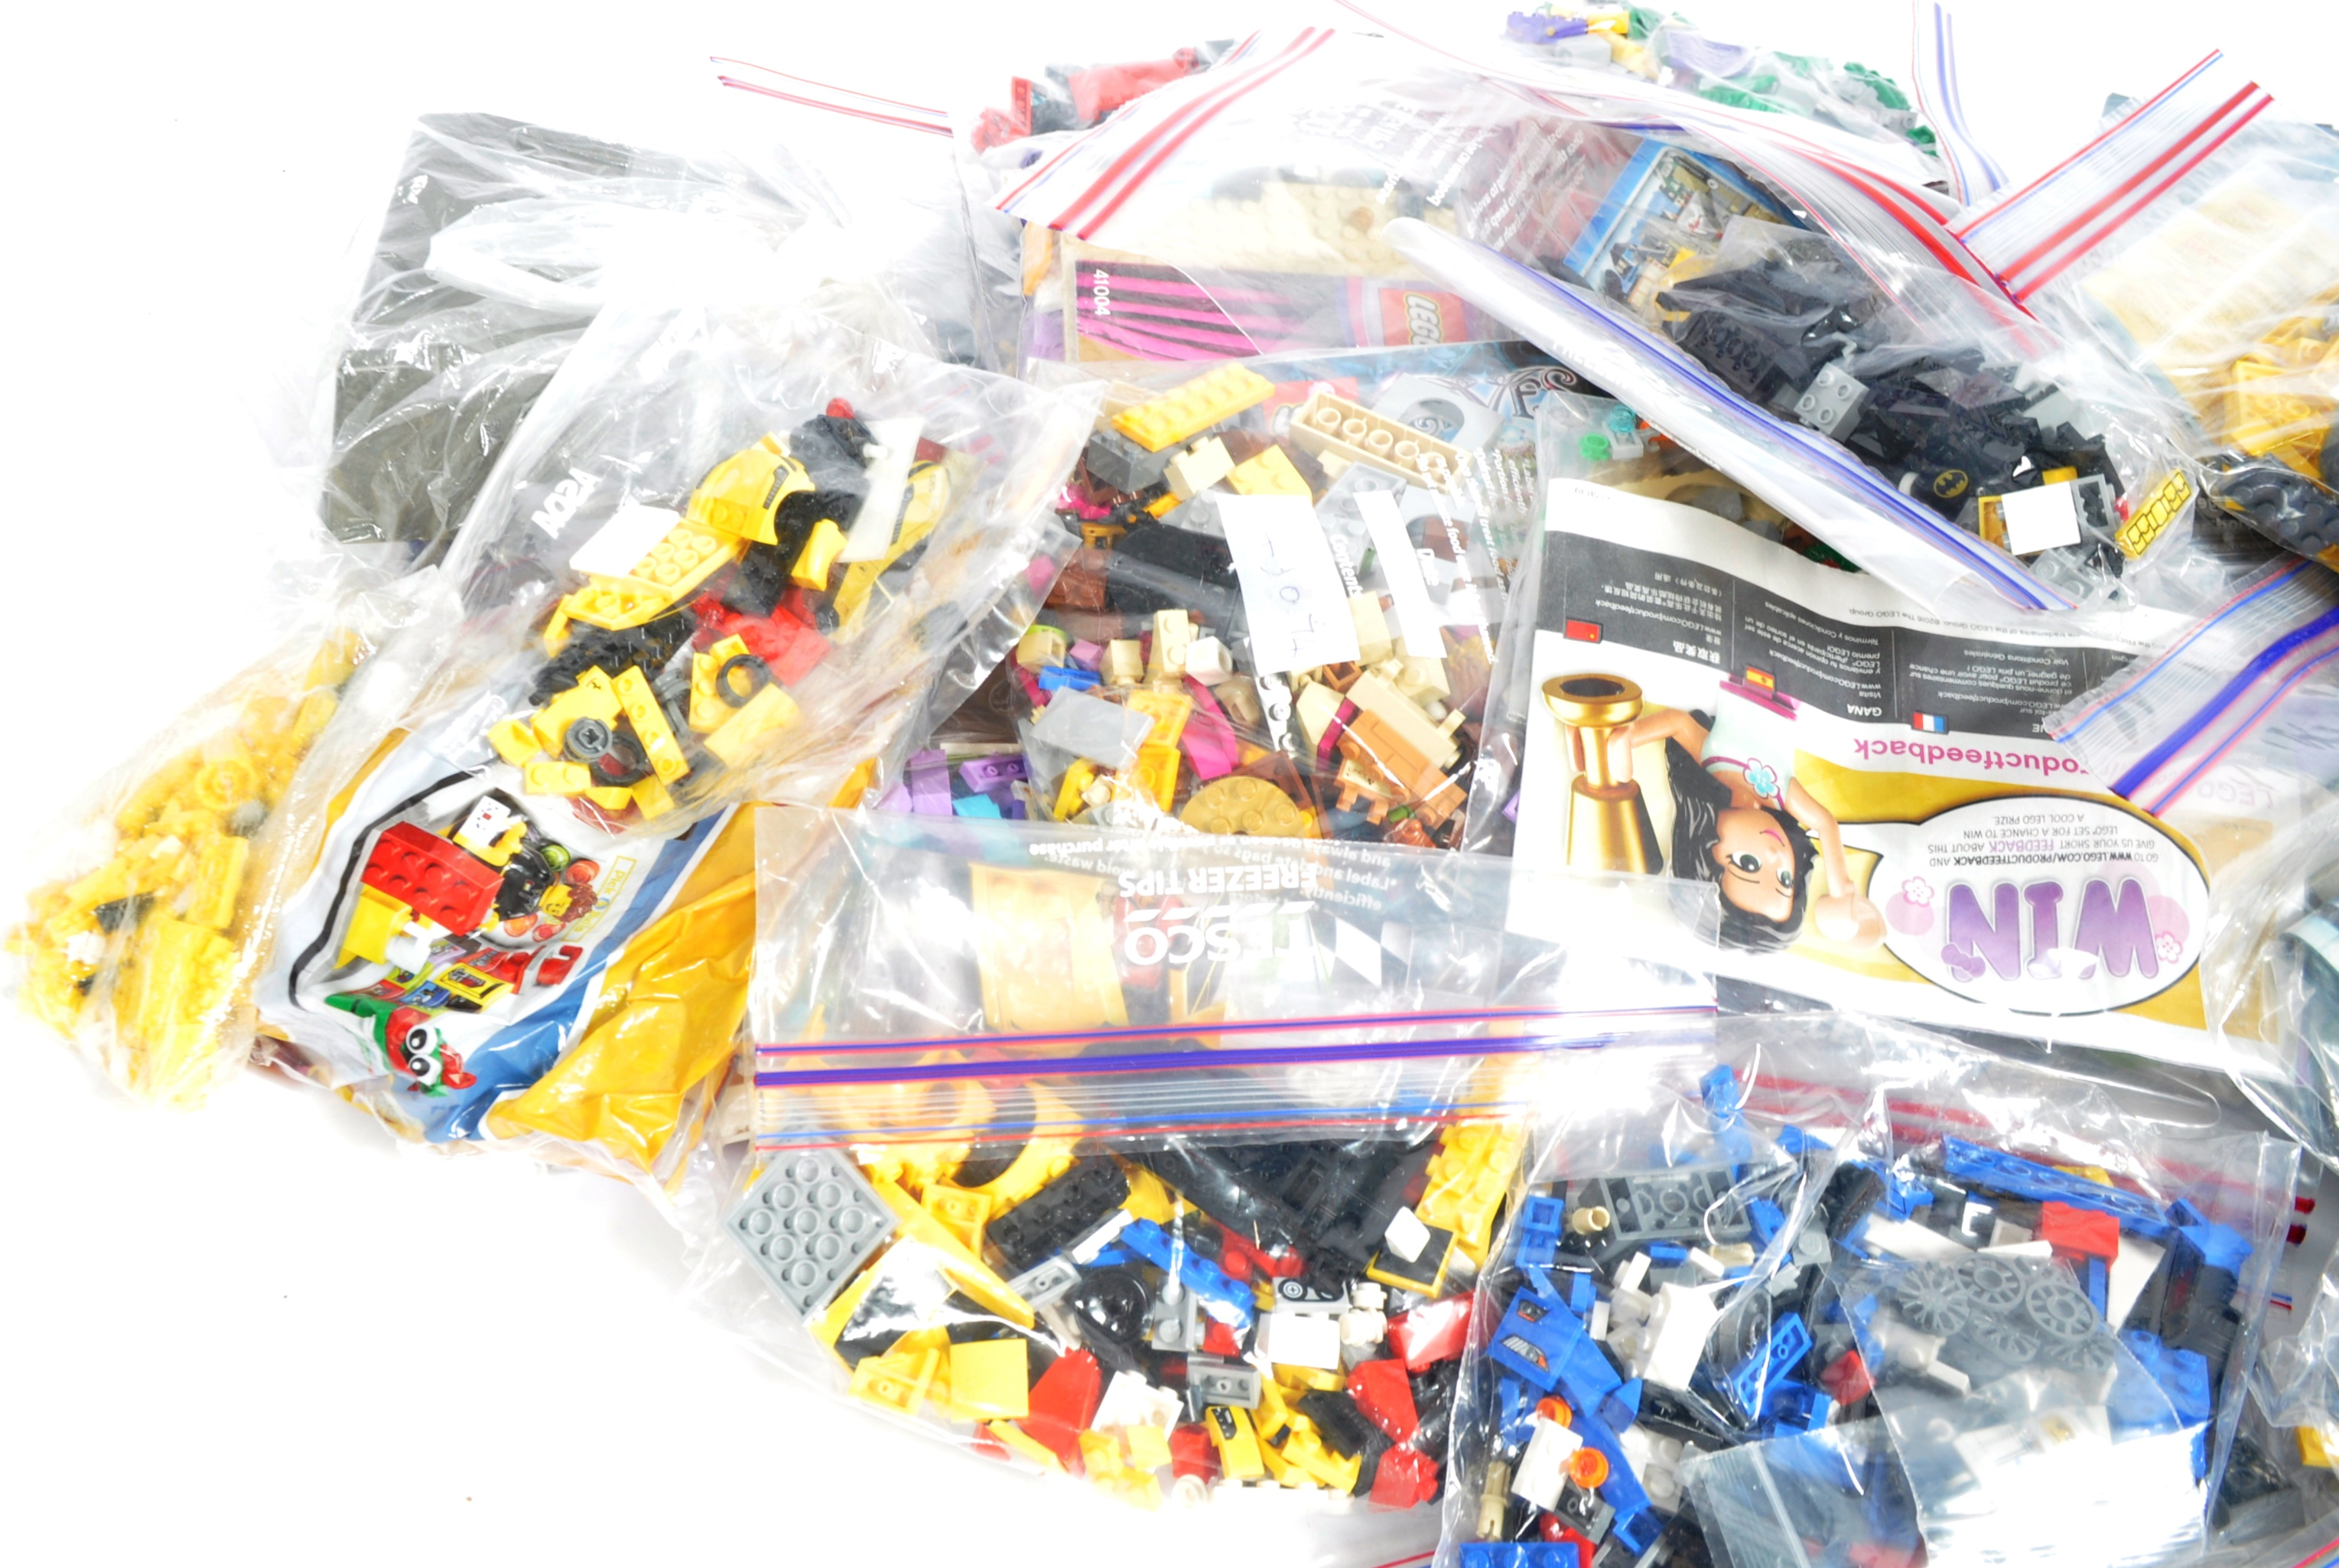 LARGE COLLECTION OF ASSORTED UNBOXED LEGO SETS - Image 4 of 5